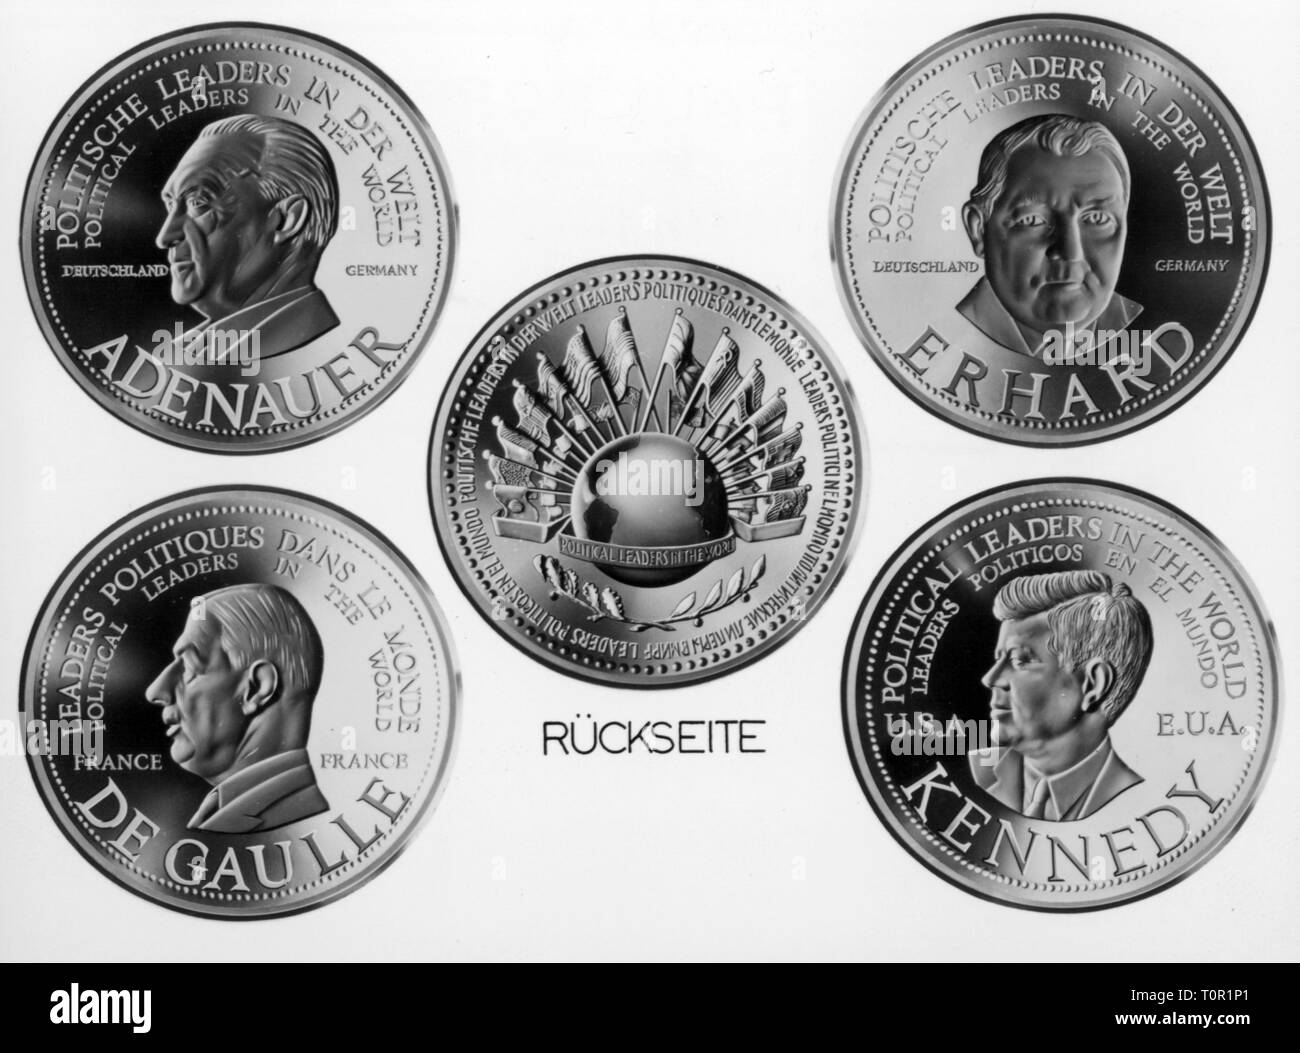 money / finances, coins, collectors' coins, series 'Political Leaders of the World', Numismatique Francais, 1963, Additional-Rights-Clearance-Info-Not-Available - Stock Image